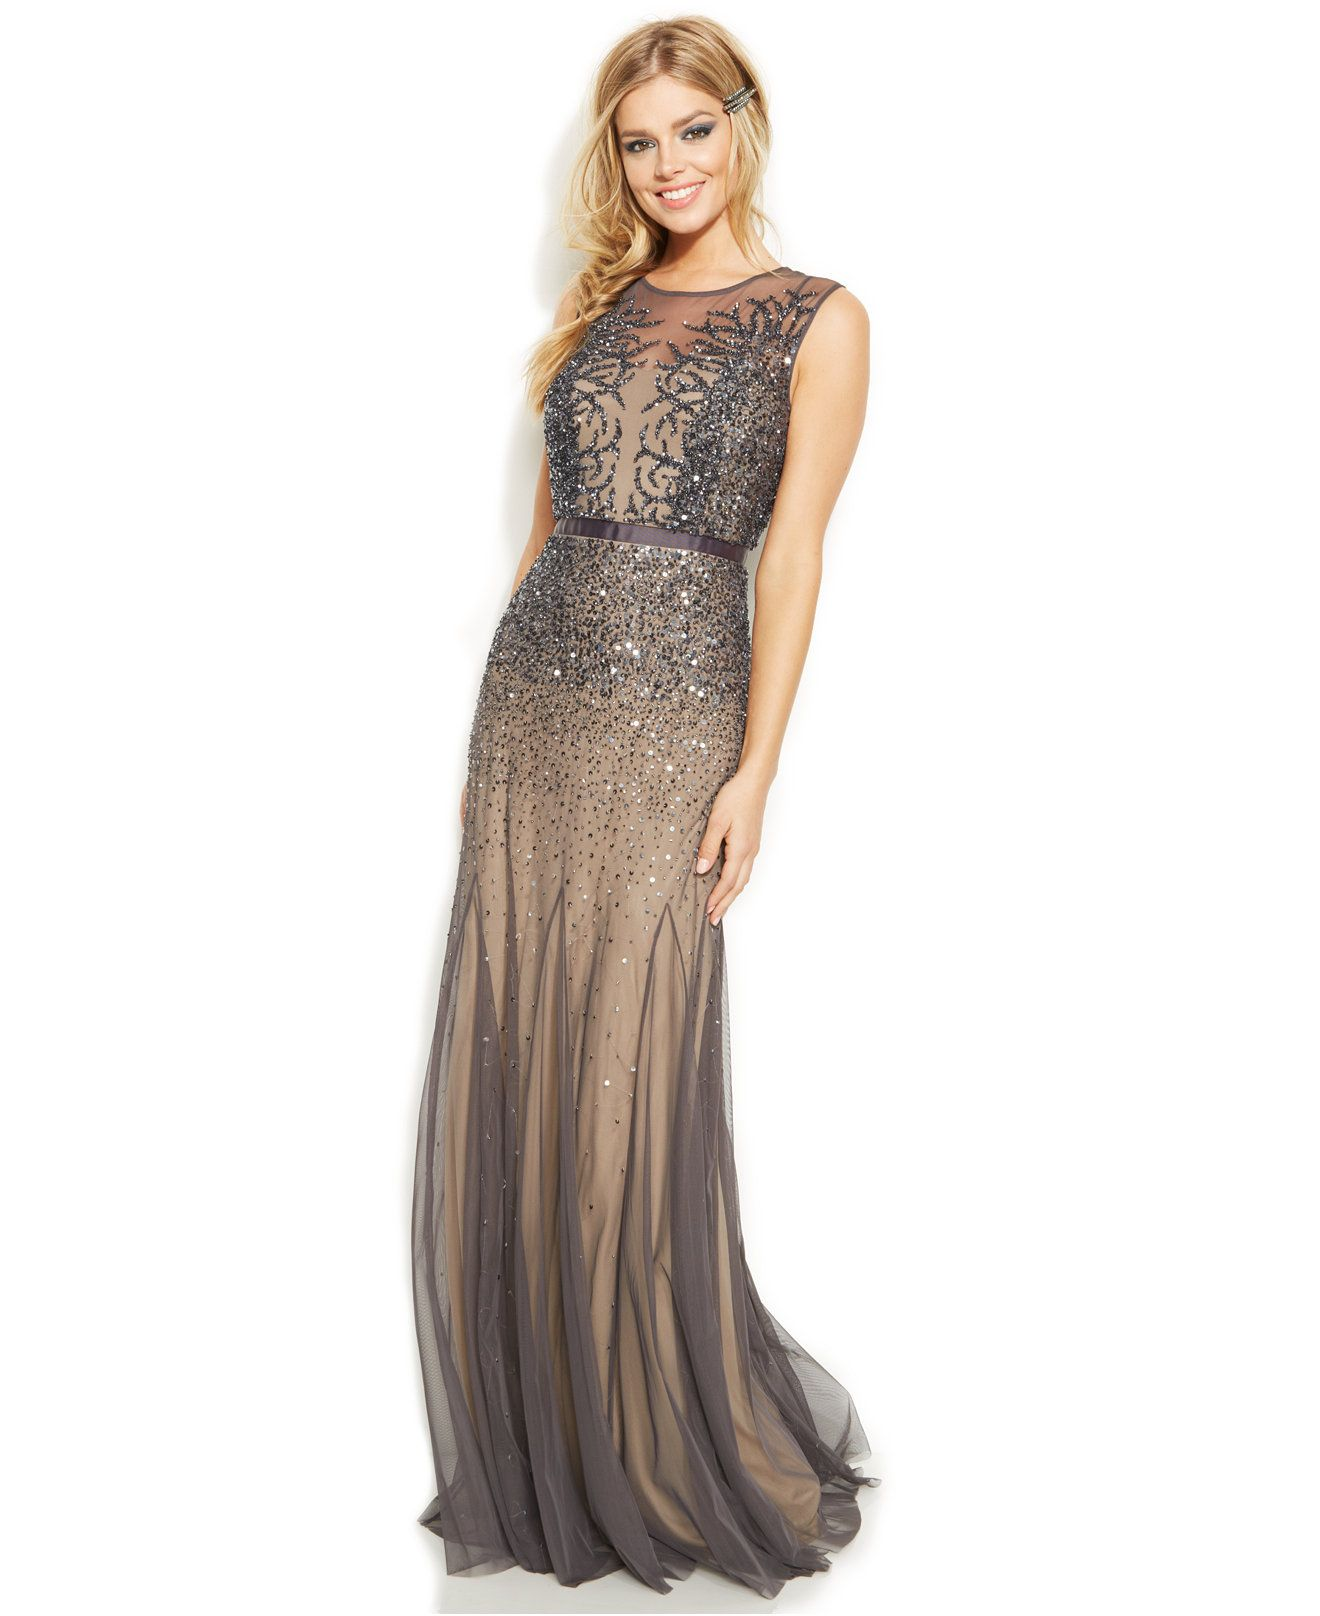 Adrianna Papell Sleeveless Beaded Illusion Gown - Dresses - Women ...